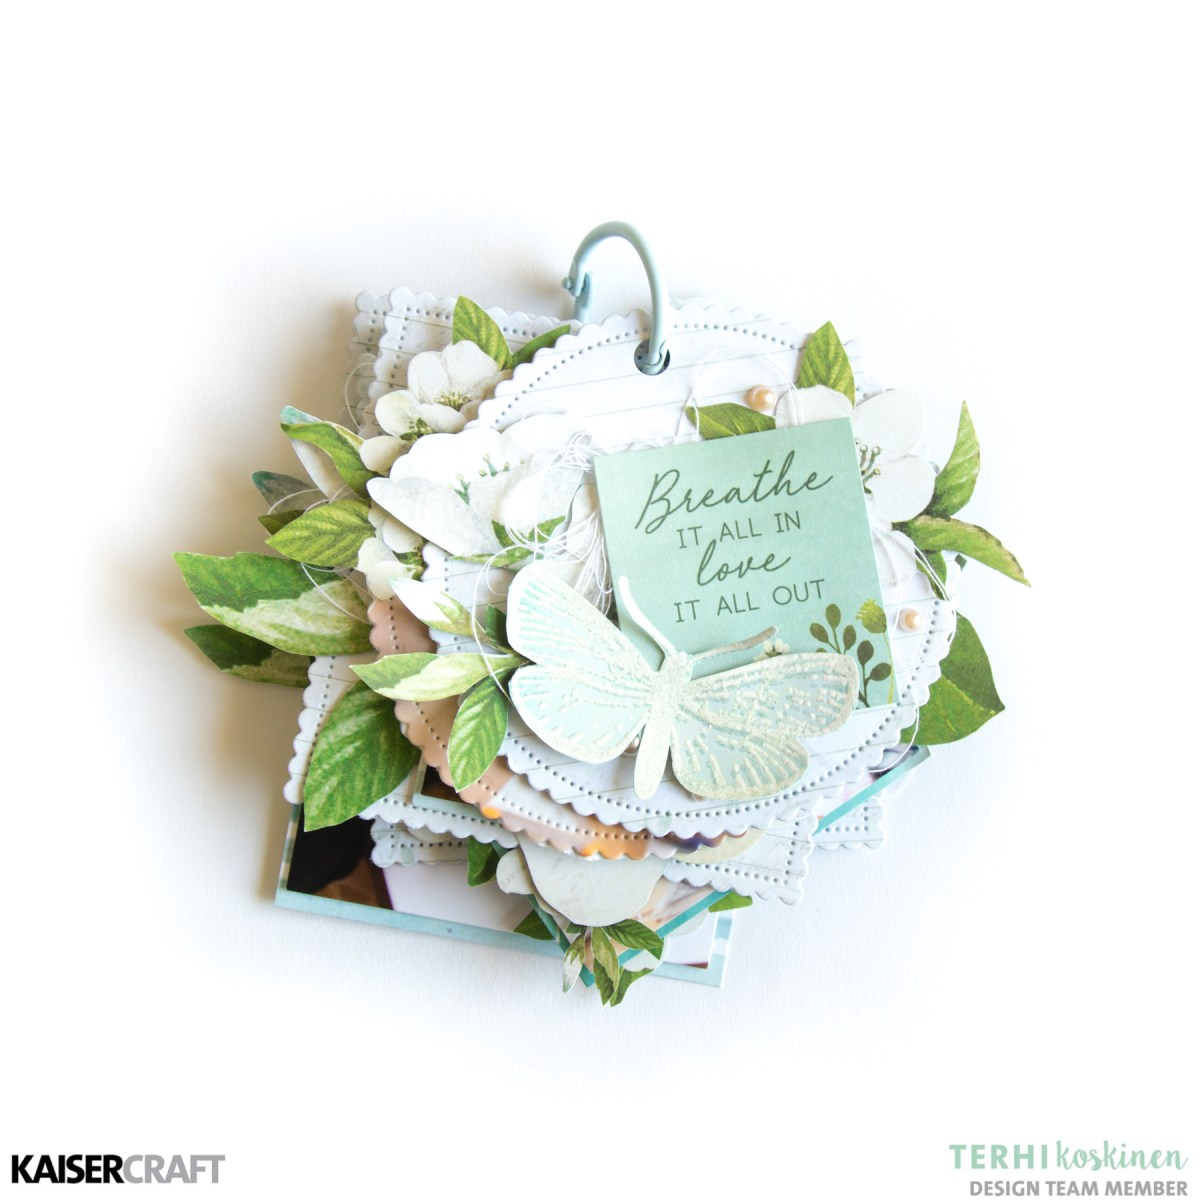 Morning Dew Mini Book with Terhi Koskinen